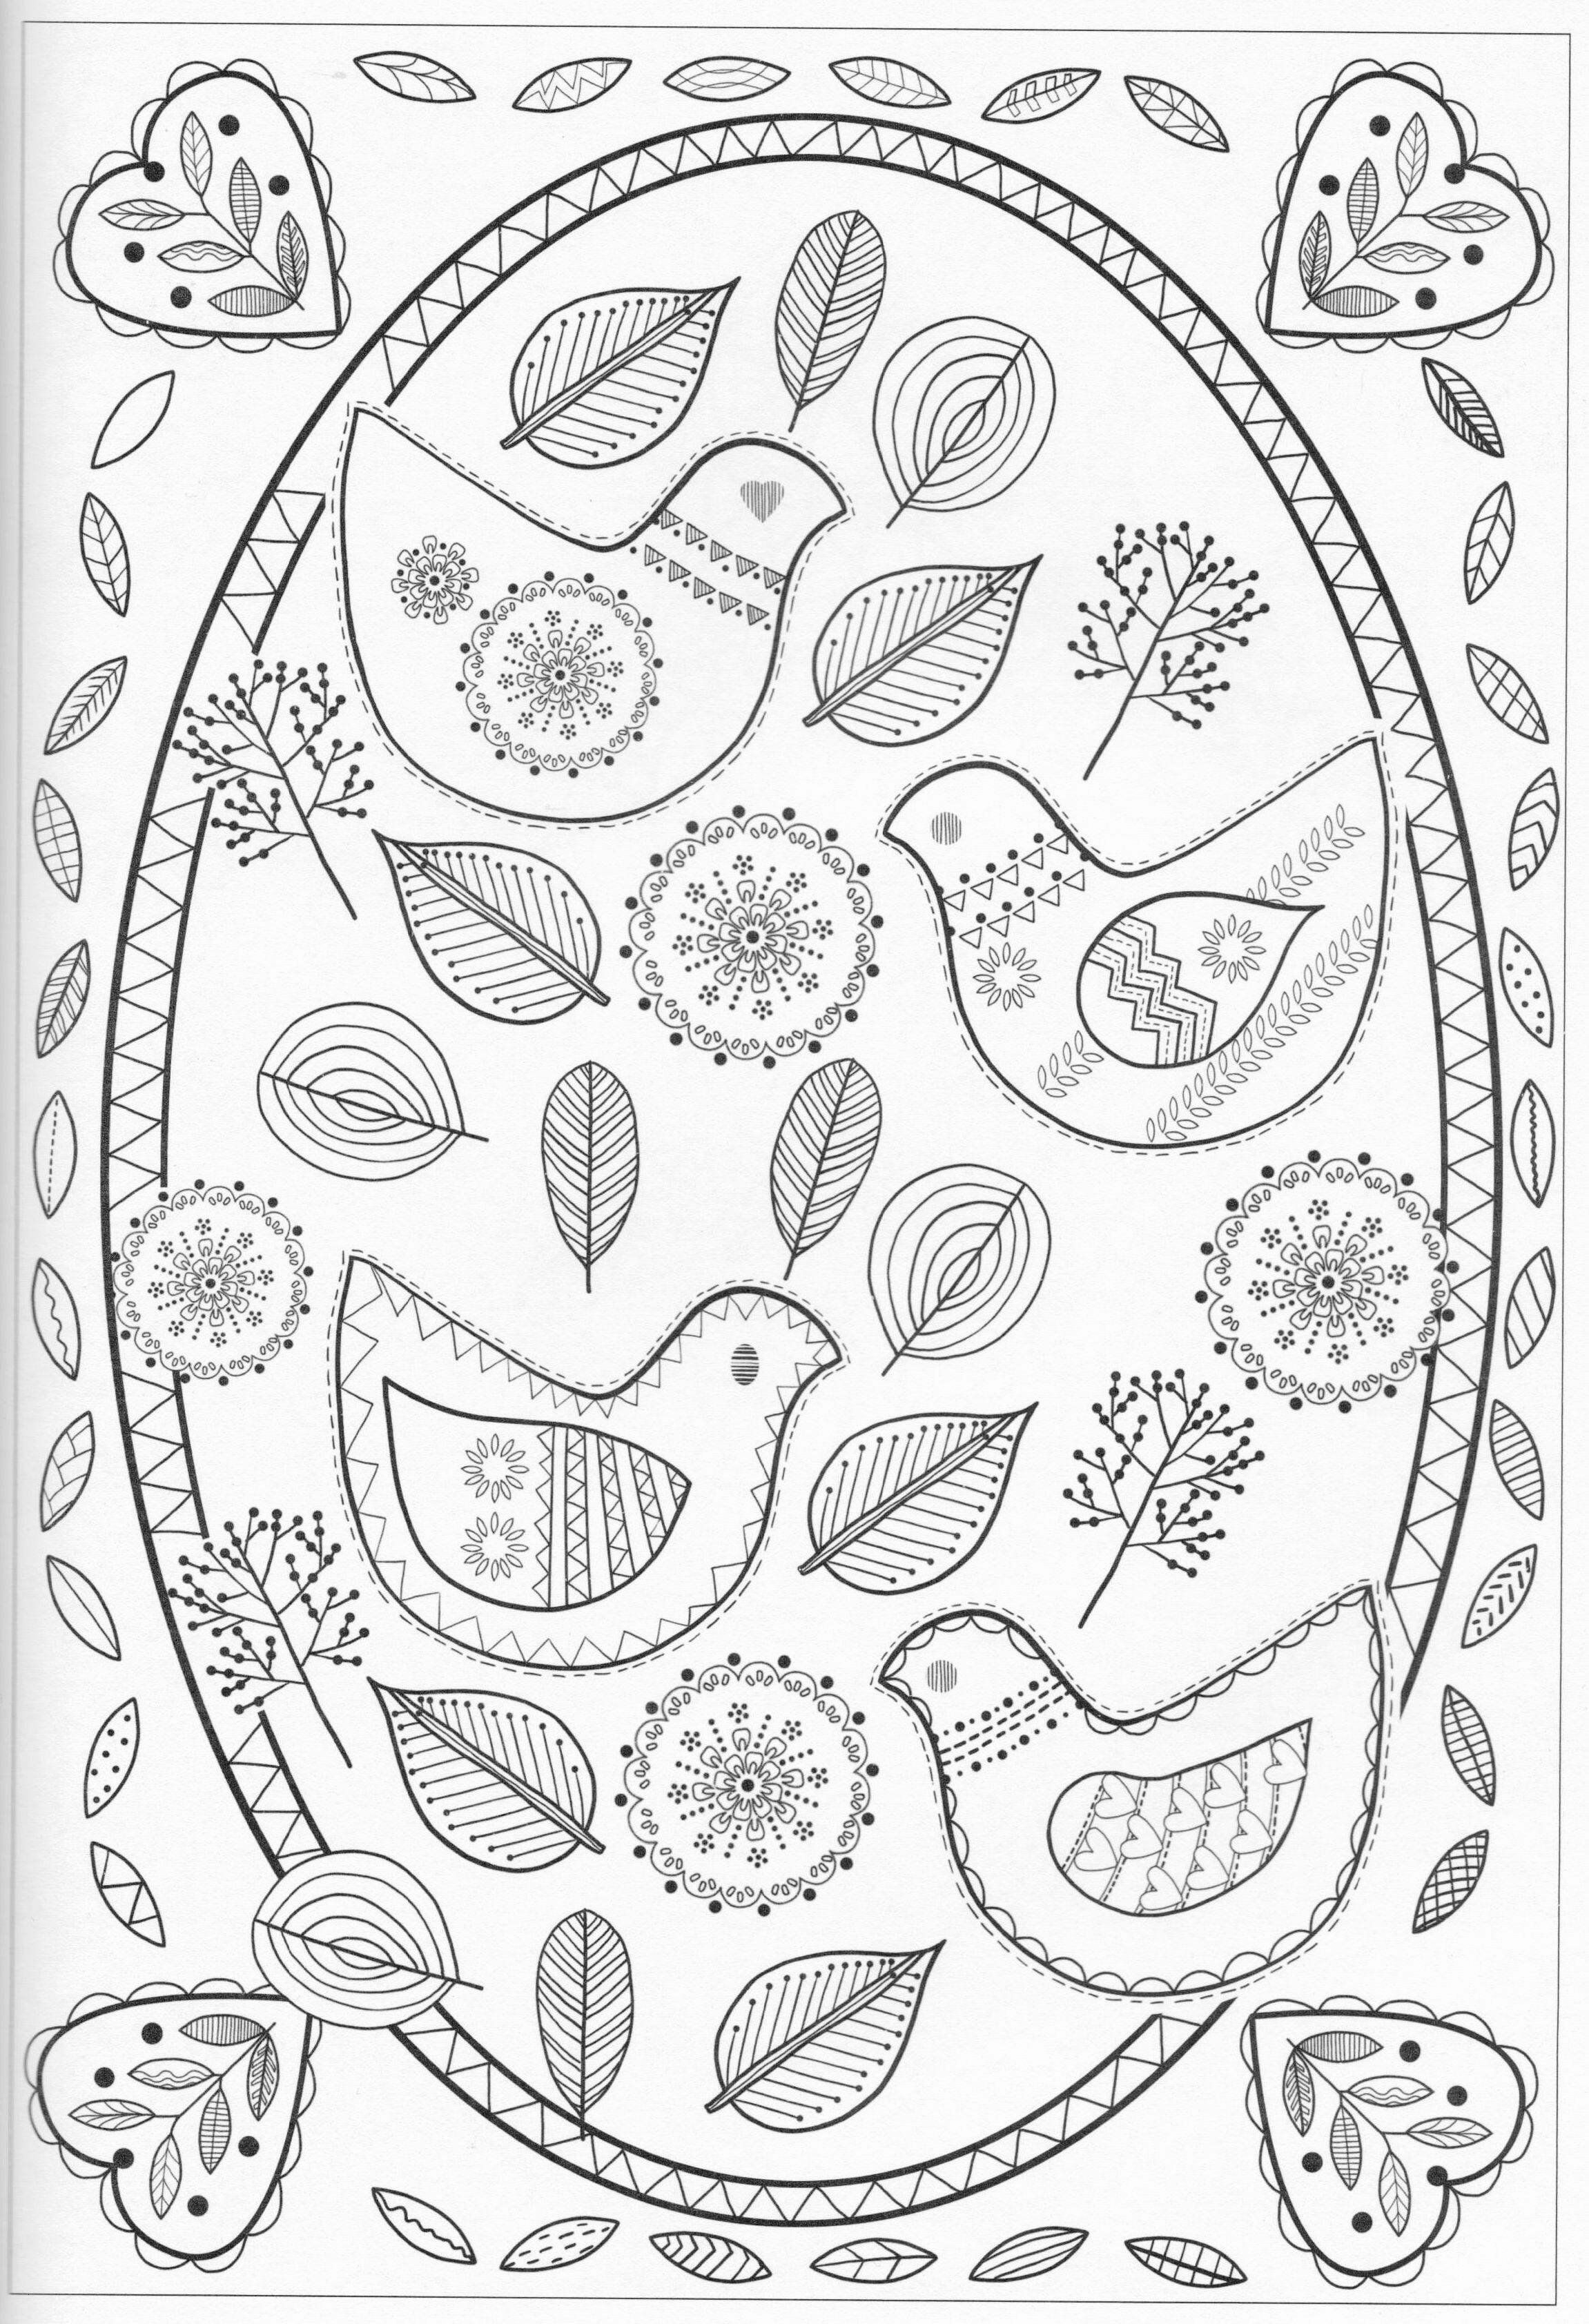 Coloring Book Artist Fresh New Art Coloring Books Love Coloring Pages Mandala Coloring Books Designs Coloring Books